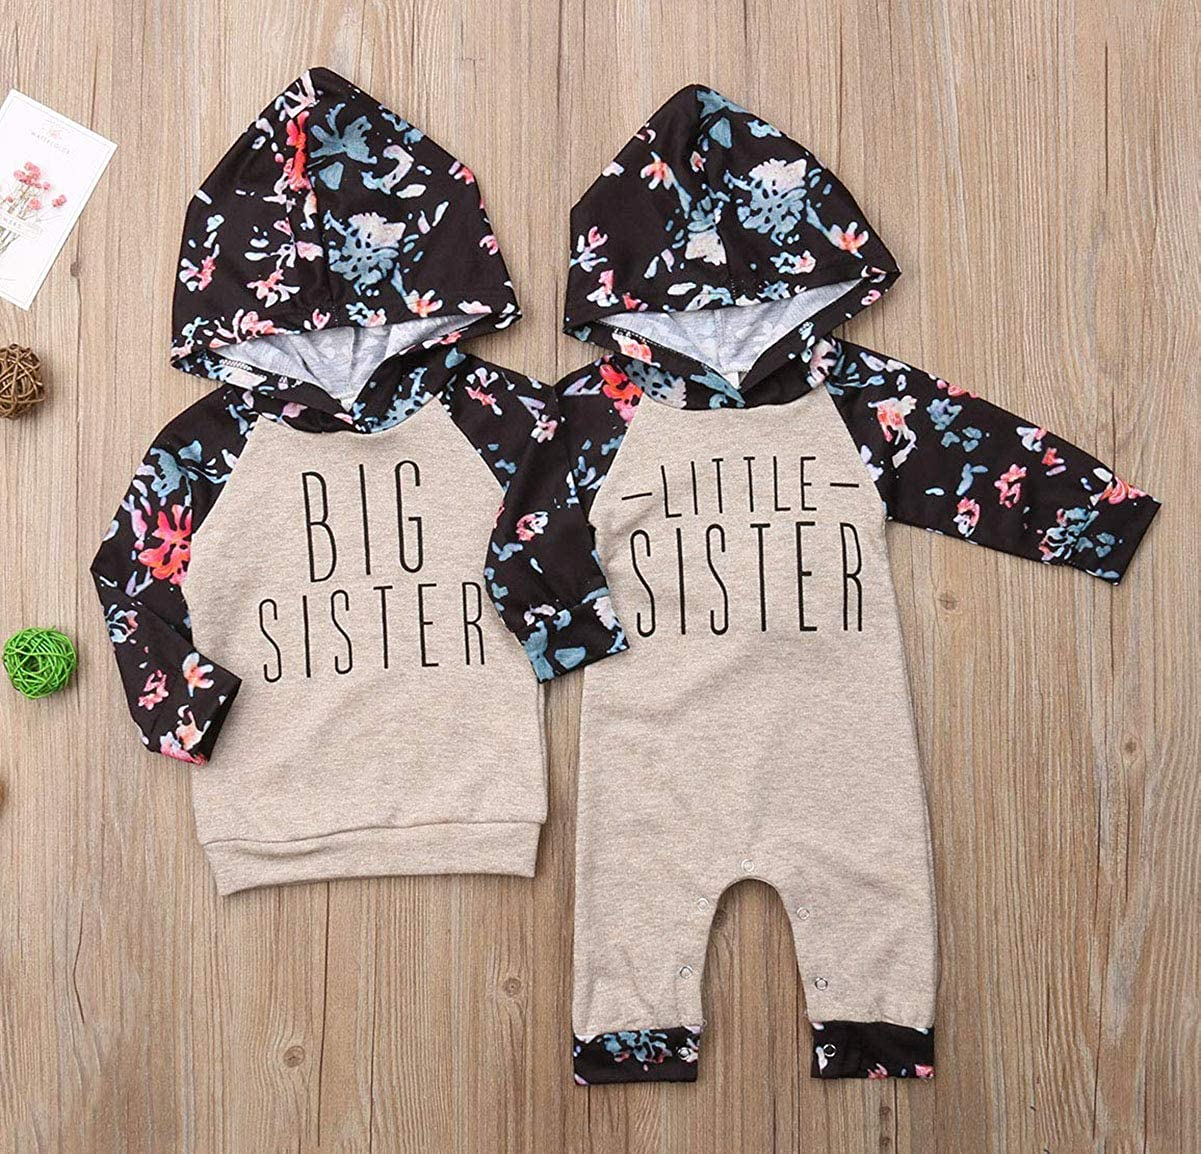 Baby Girl Sister Matching Floral Clothes Long Sleeve Floral Bodysuit Hooded Sweatshirts Top Kids Jumpsuit Romper Outfit